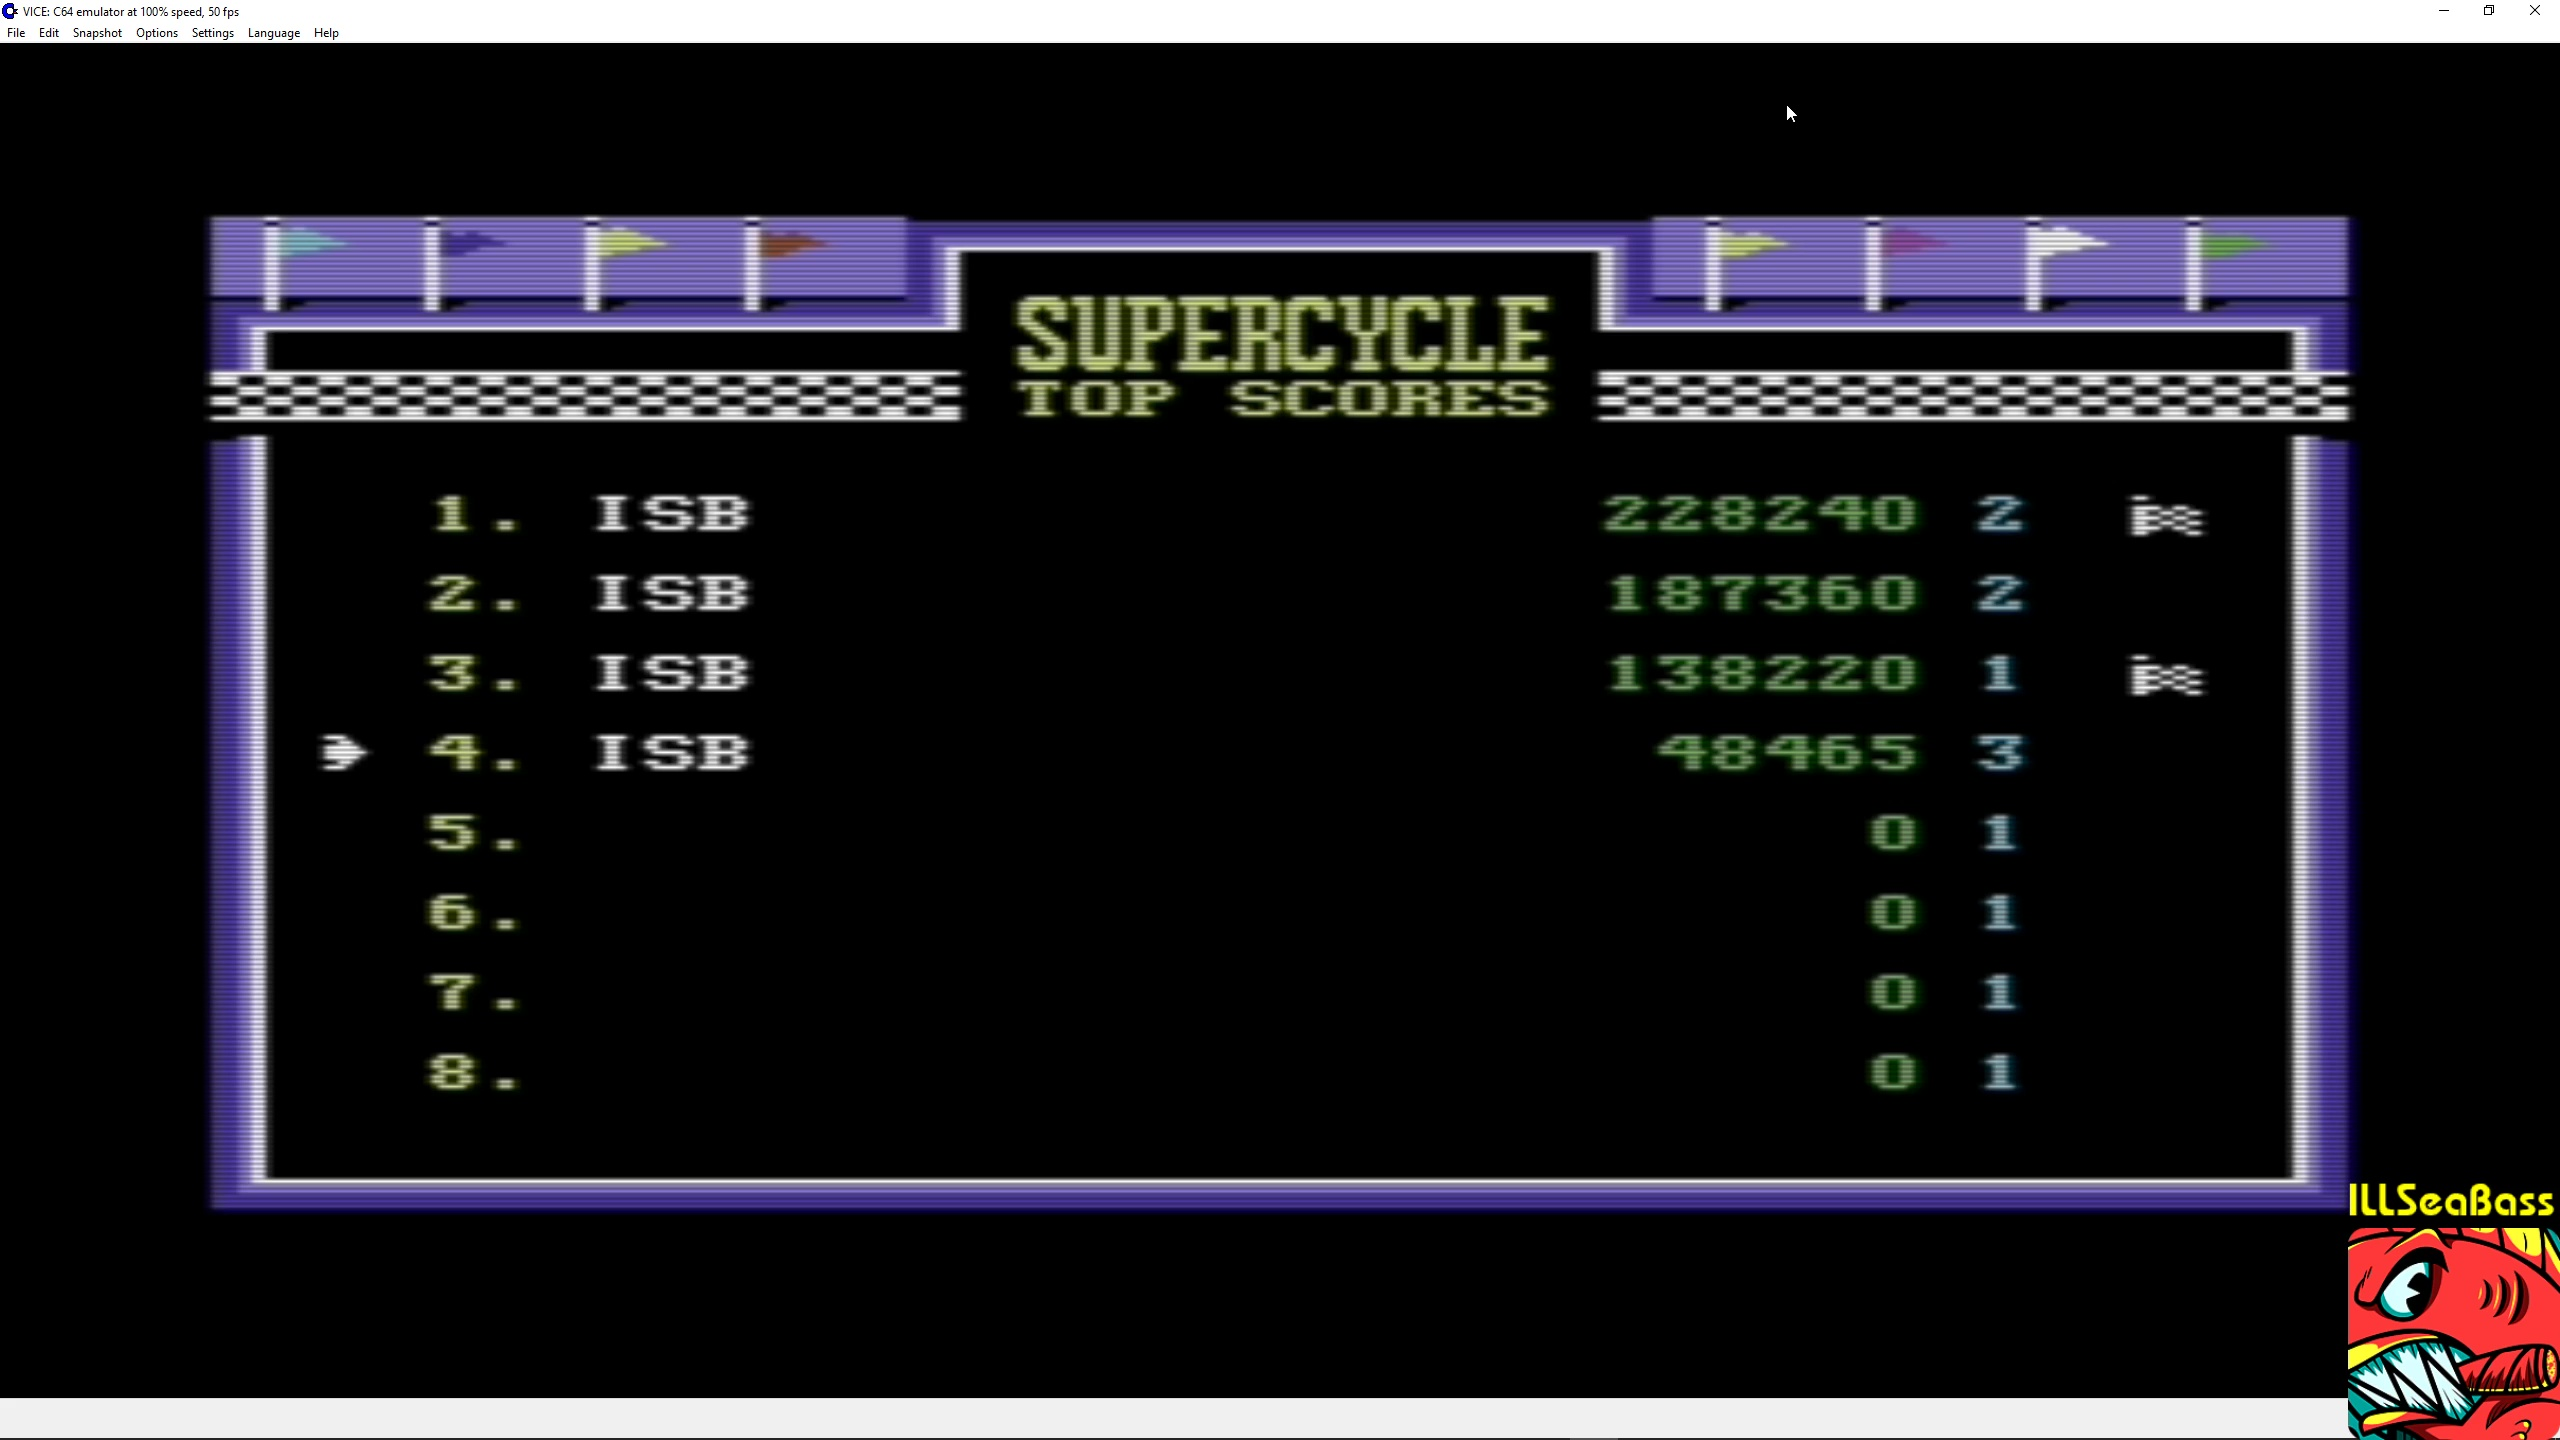 ILLSeaBass: Super Cycle [Level 3 Start] (Commodore 64 Emulated) 48,465 points on 2018-02-25 18:29:31